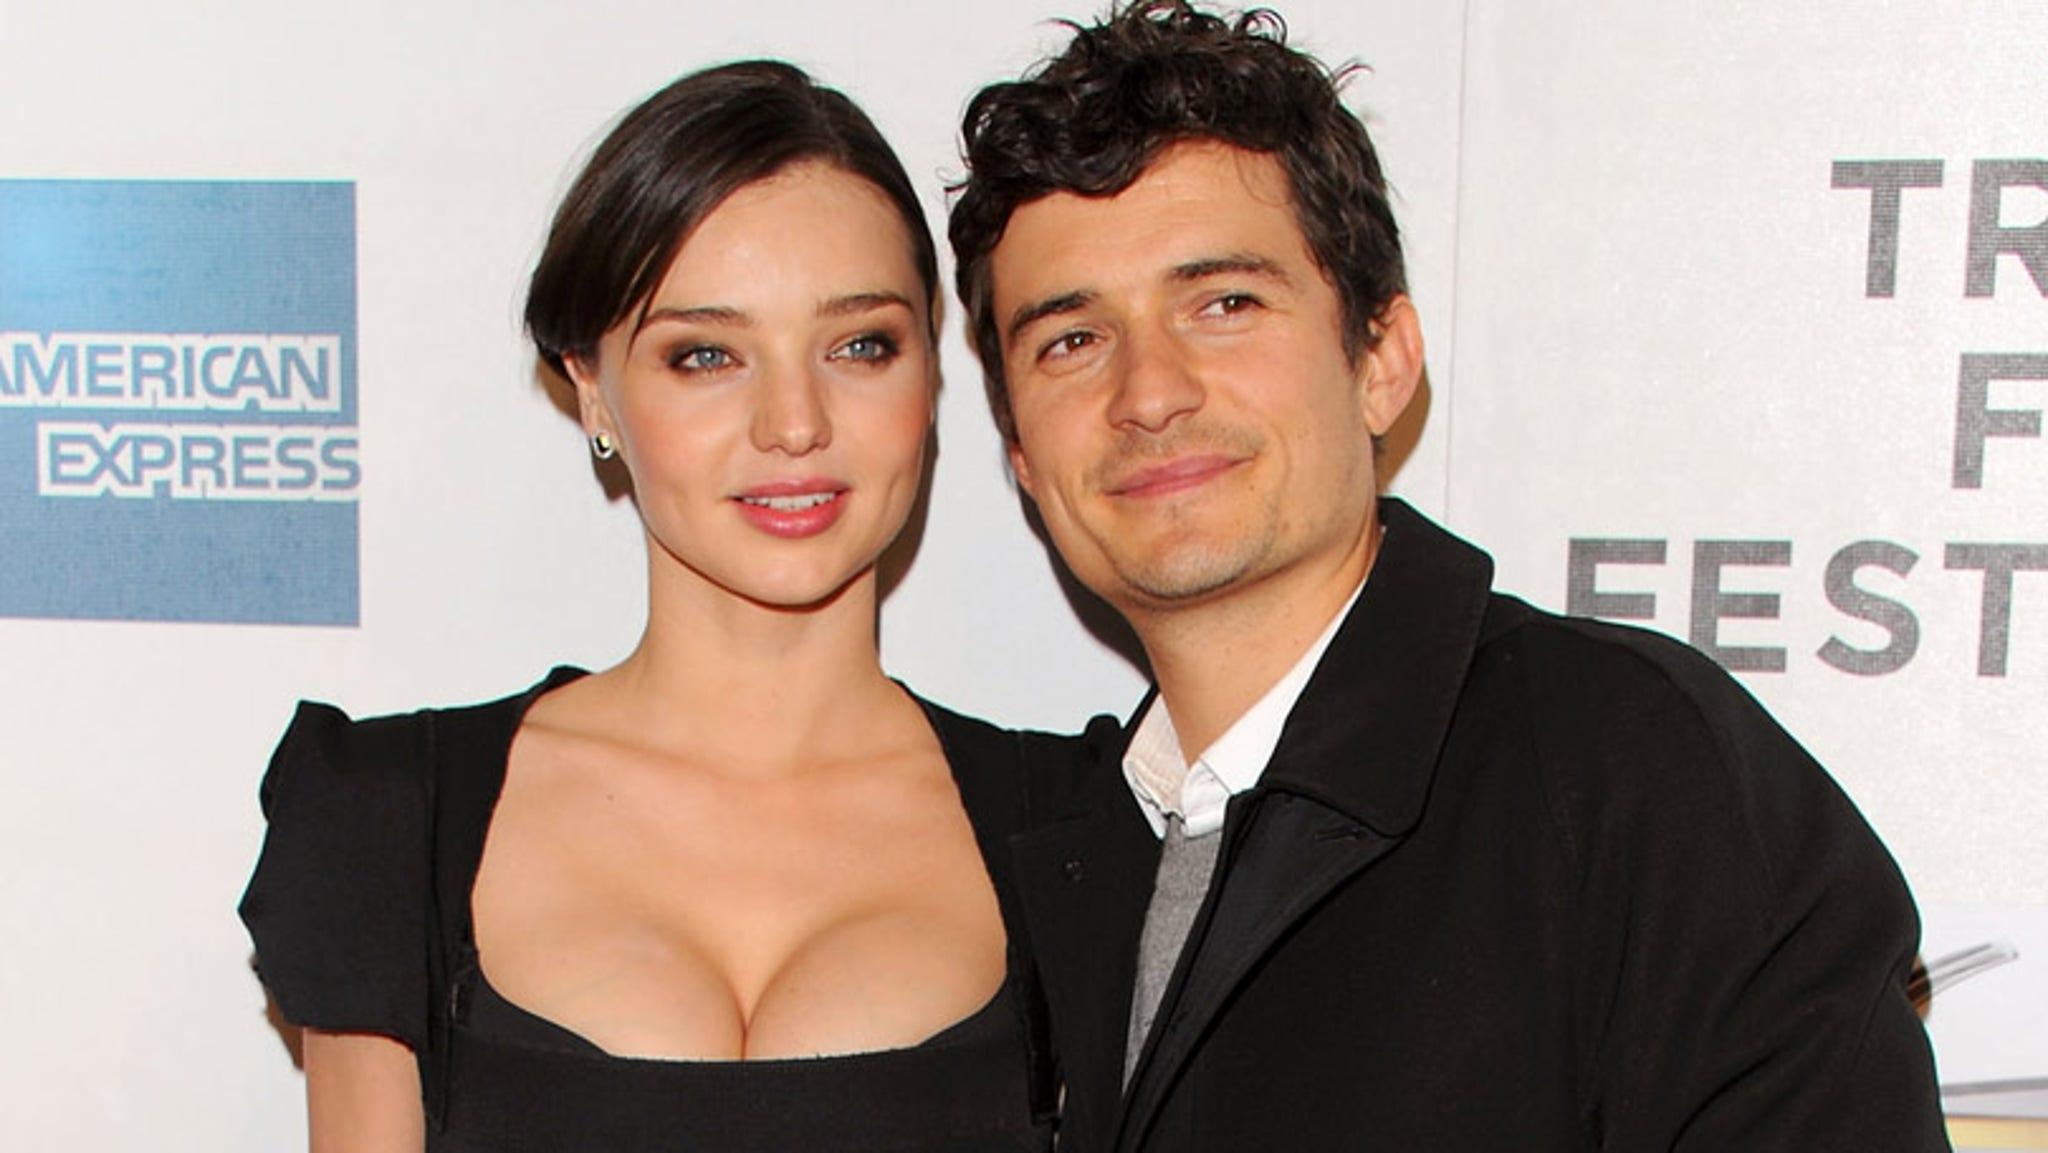 Orlando Bloom points to his naked wedding finger after